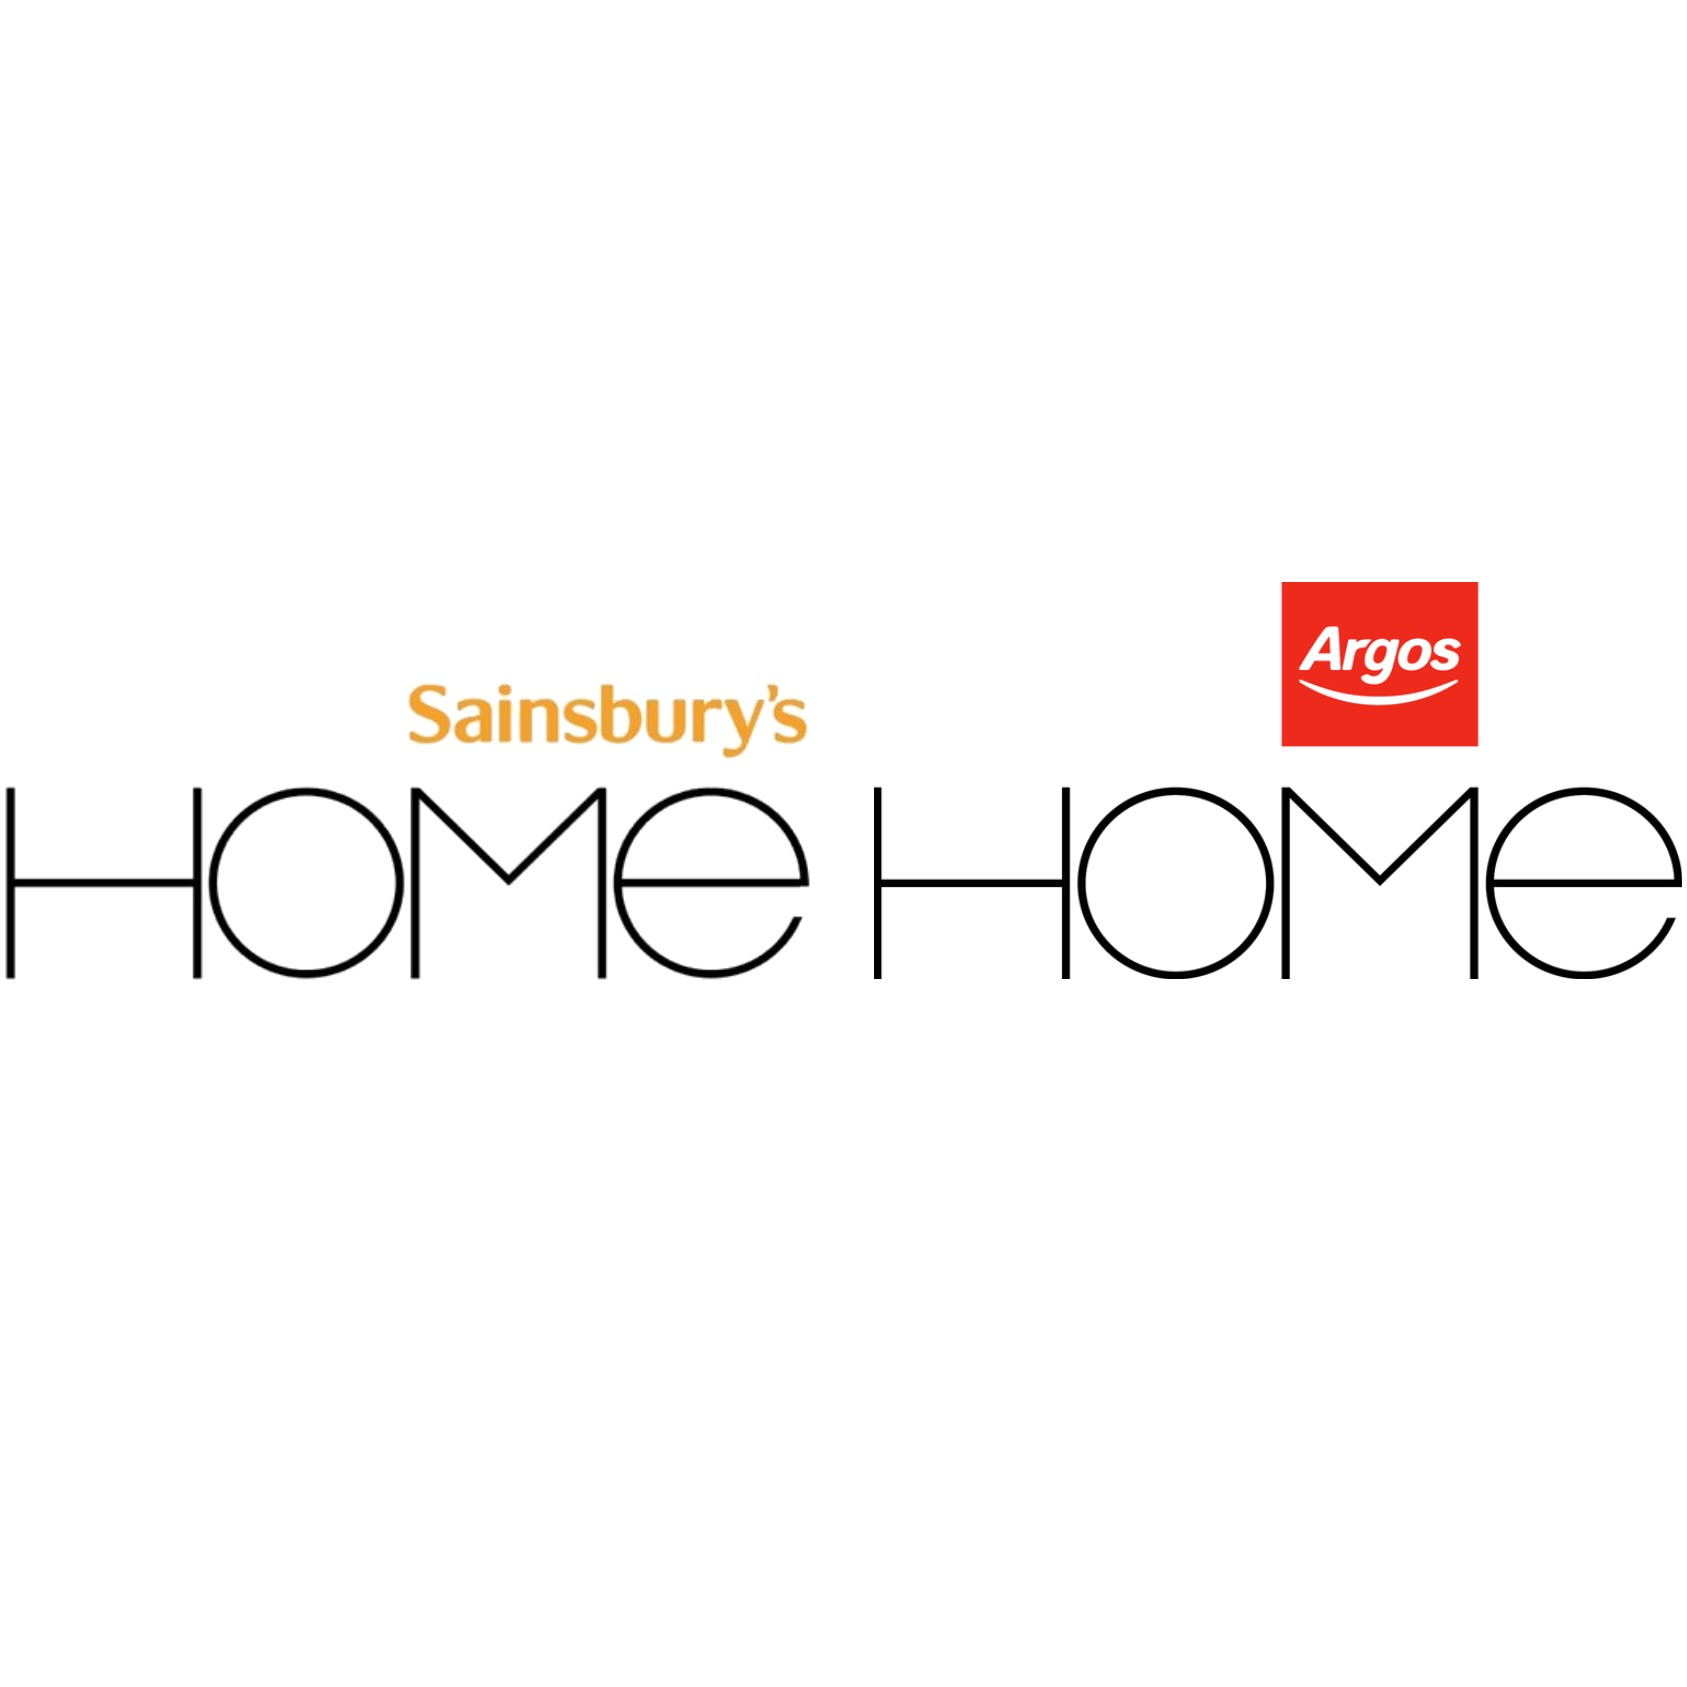 The Sainsbury's Argos Home Award: Future Thinking – Product Innovation, Design & Furniture